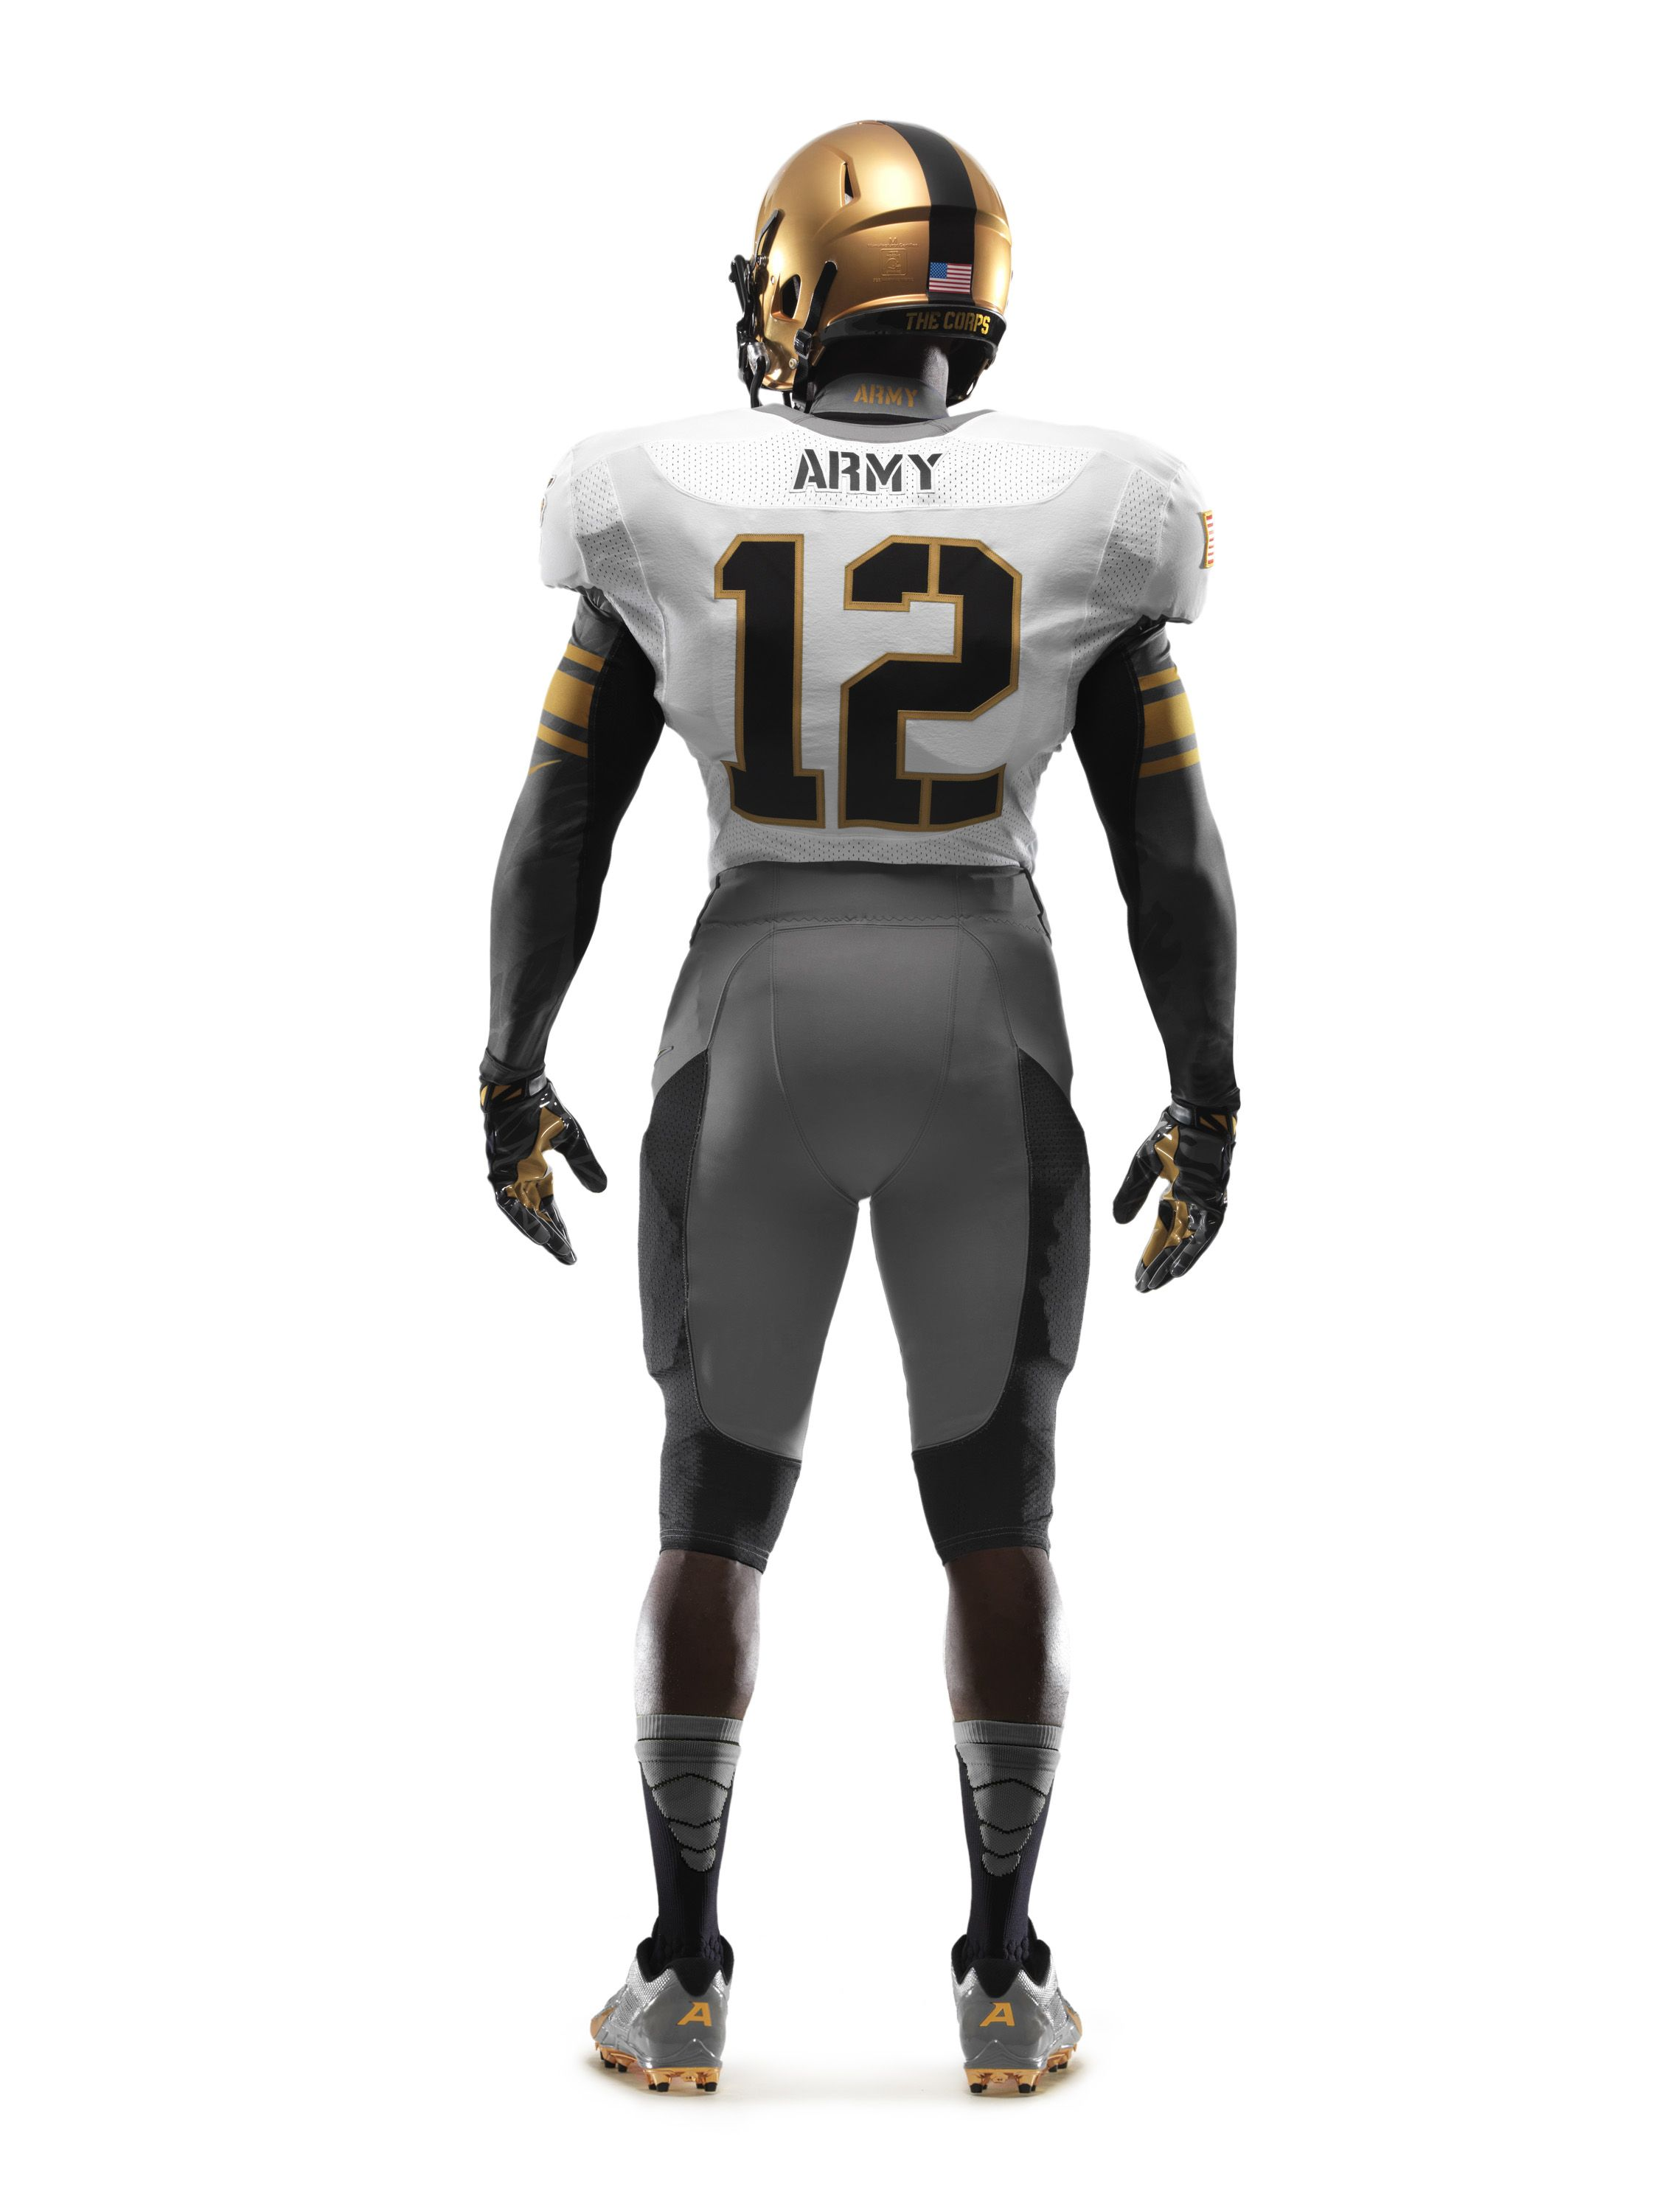 The back of Army's uniform for the ArmyNavy Game